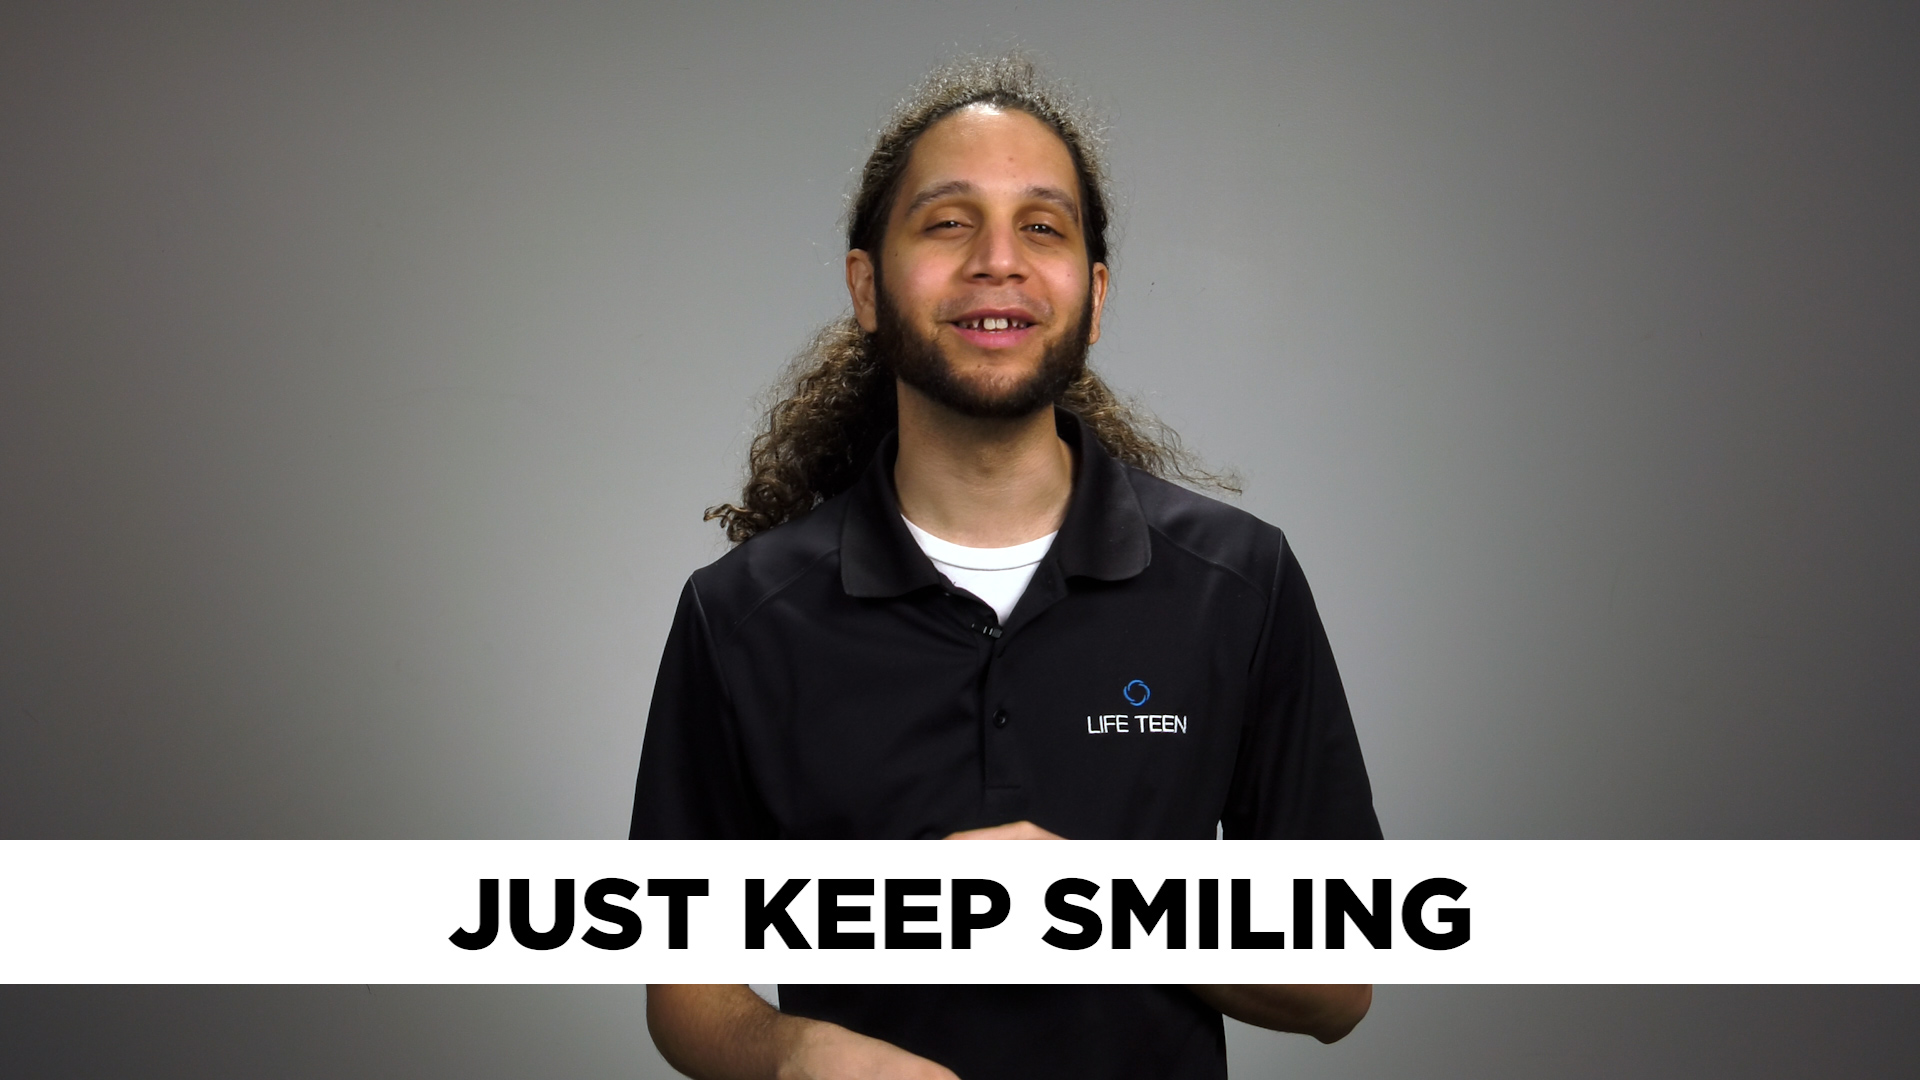 Just keep smiling